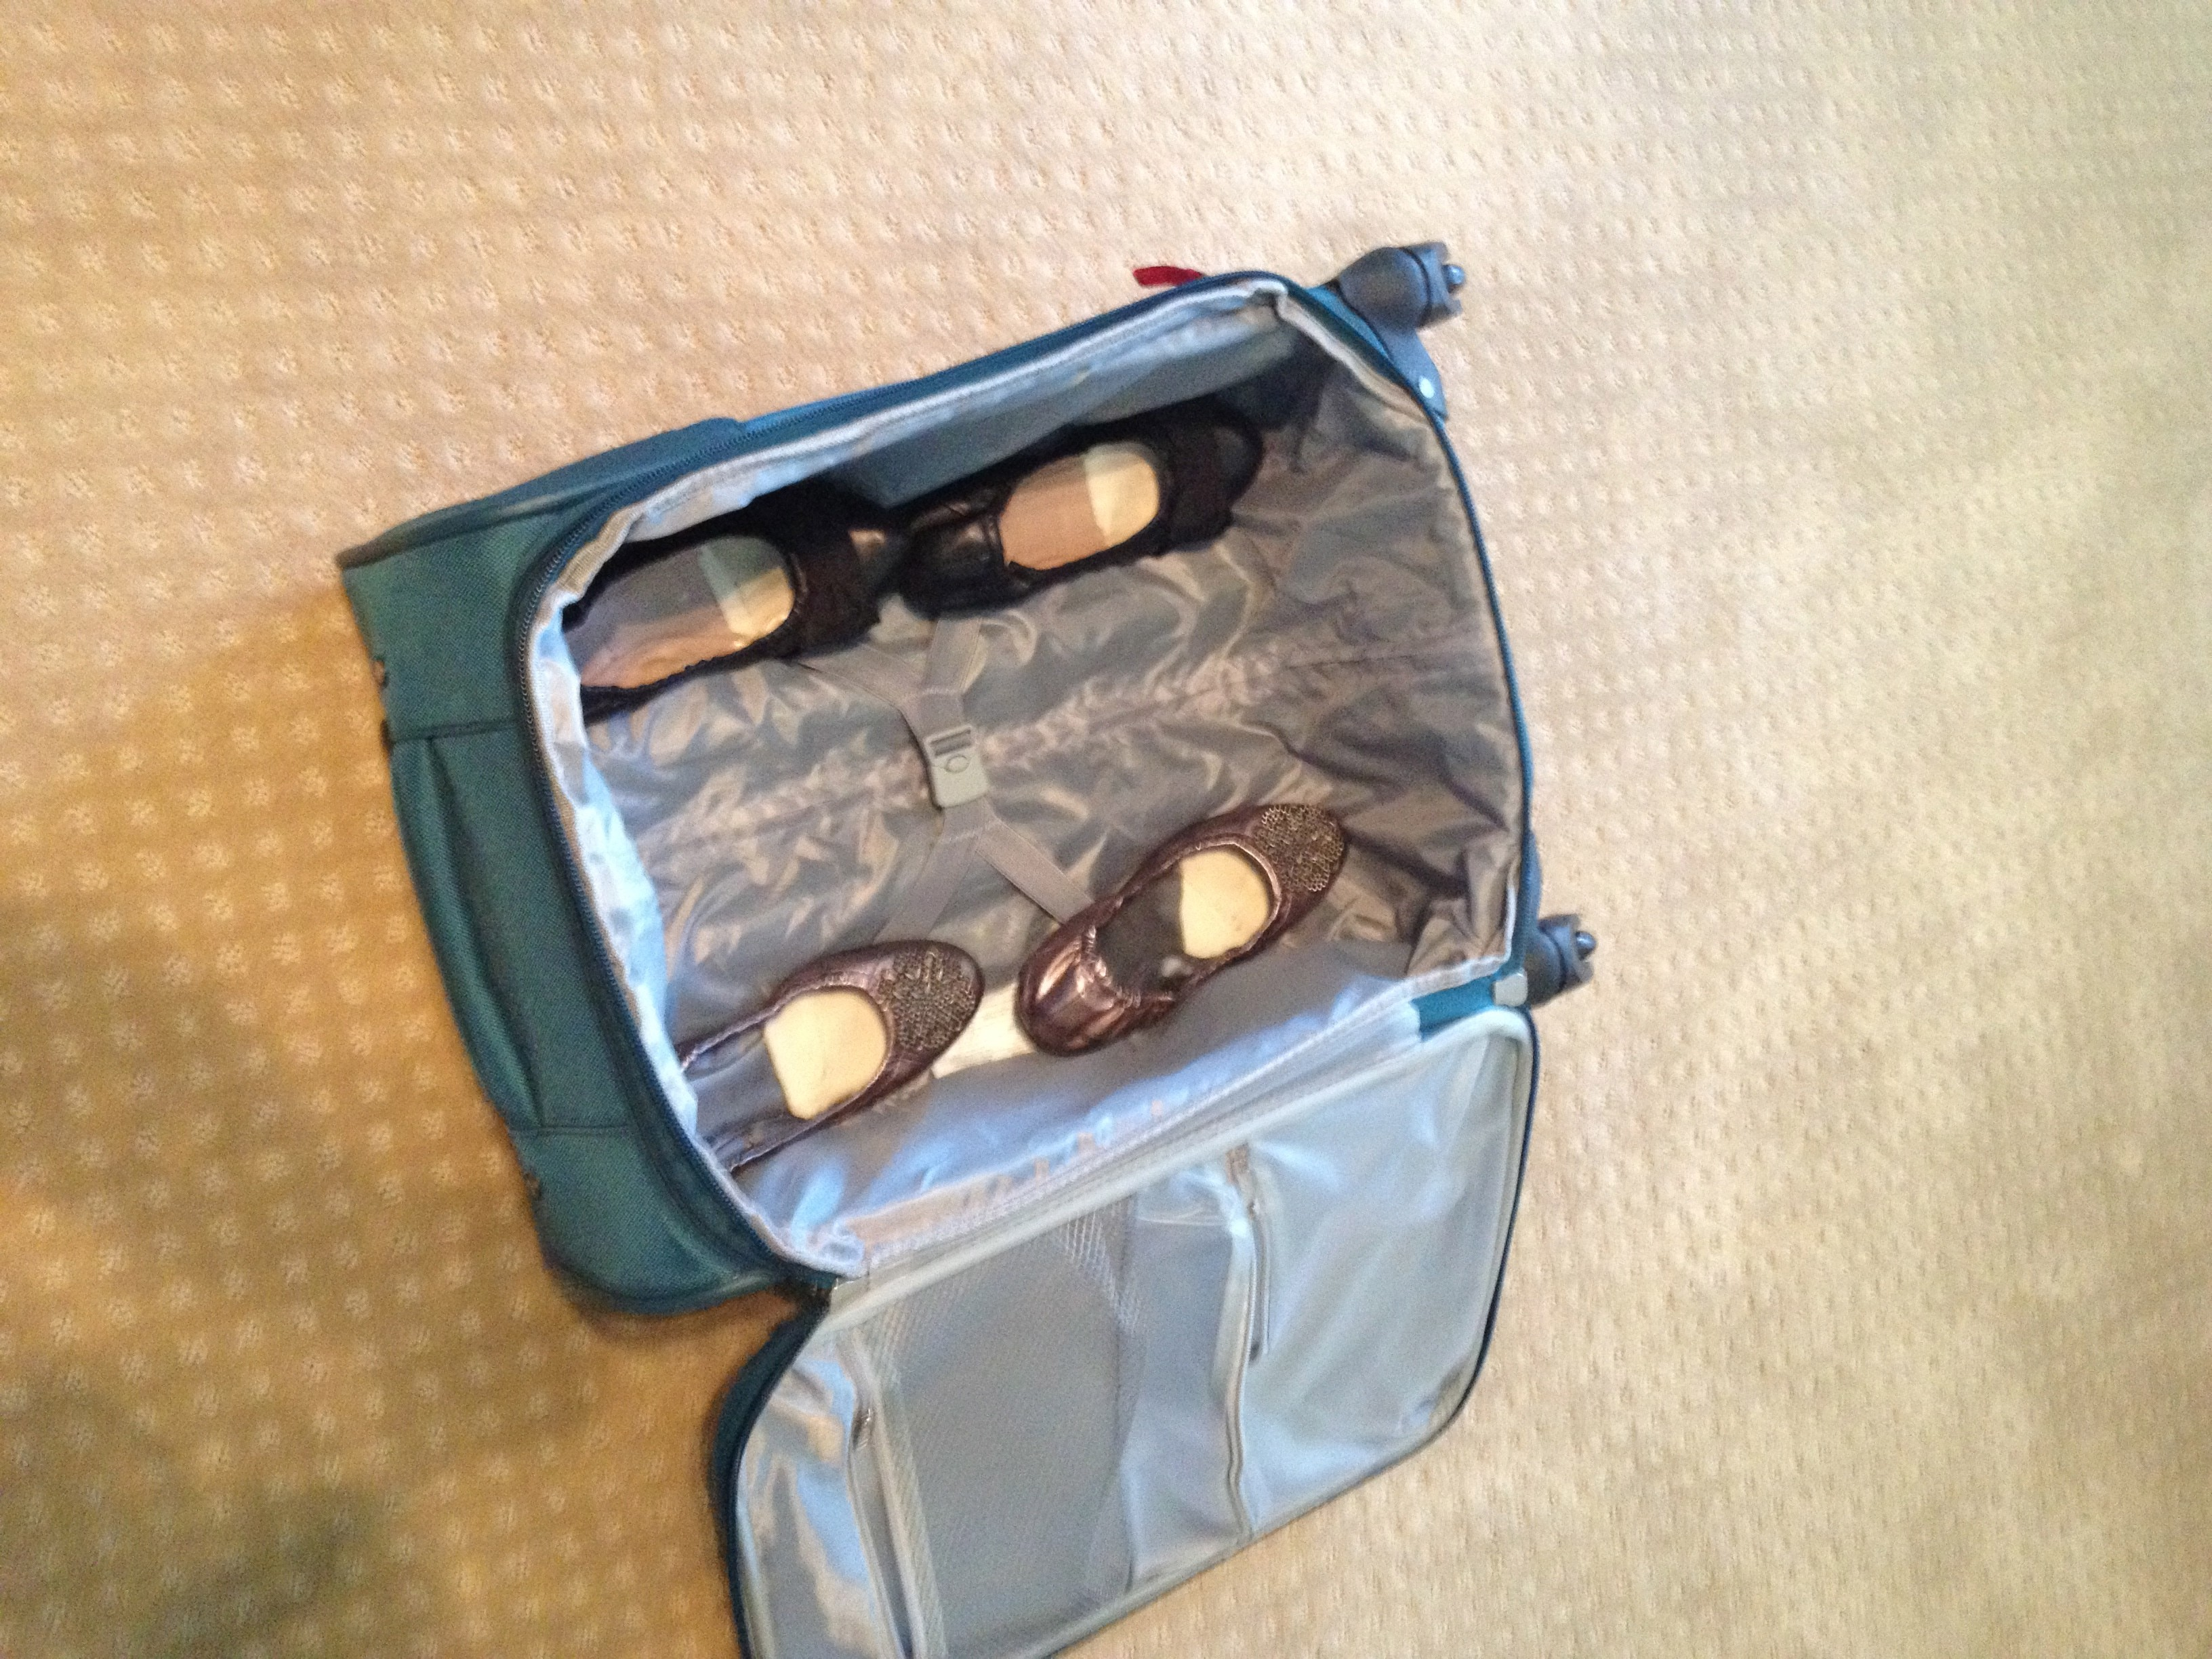 Samsonite Suitcase Ng A Life After 50 Over Baby Boomer